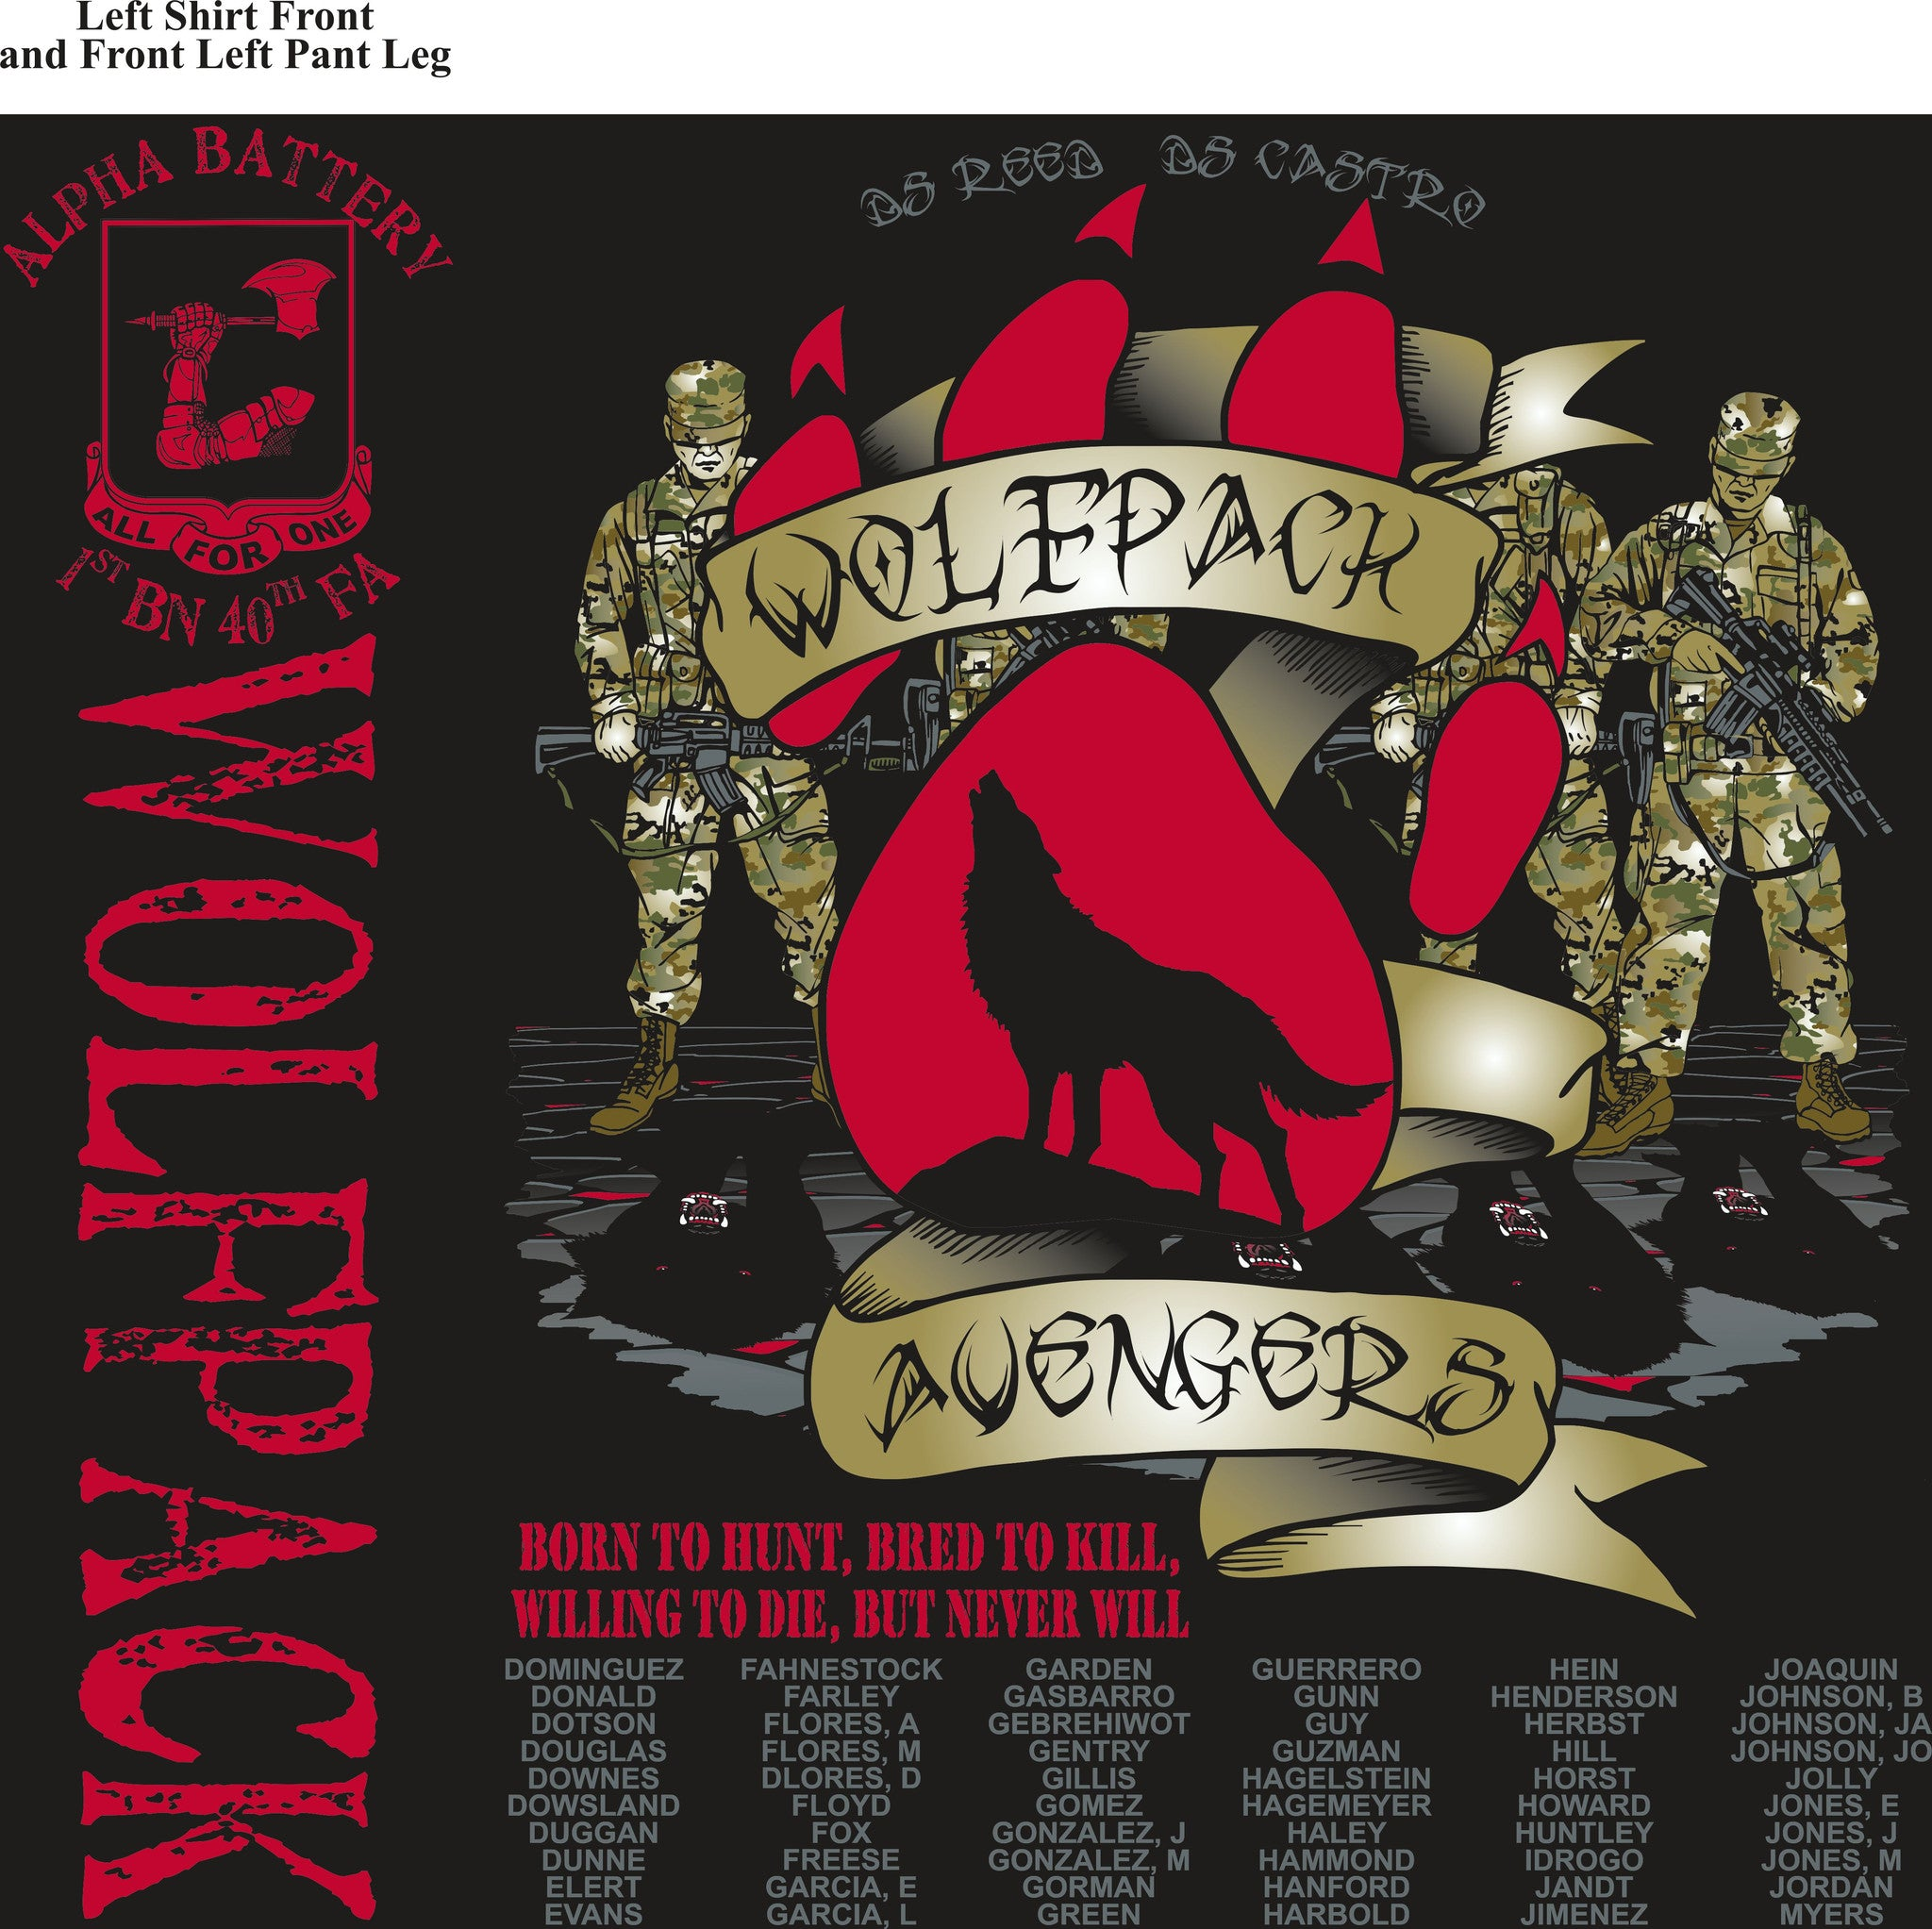 PLATOON SHIRTS (2nd generation print) ALPHA 1st 40th WOLFPACK SEPT 2016